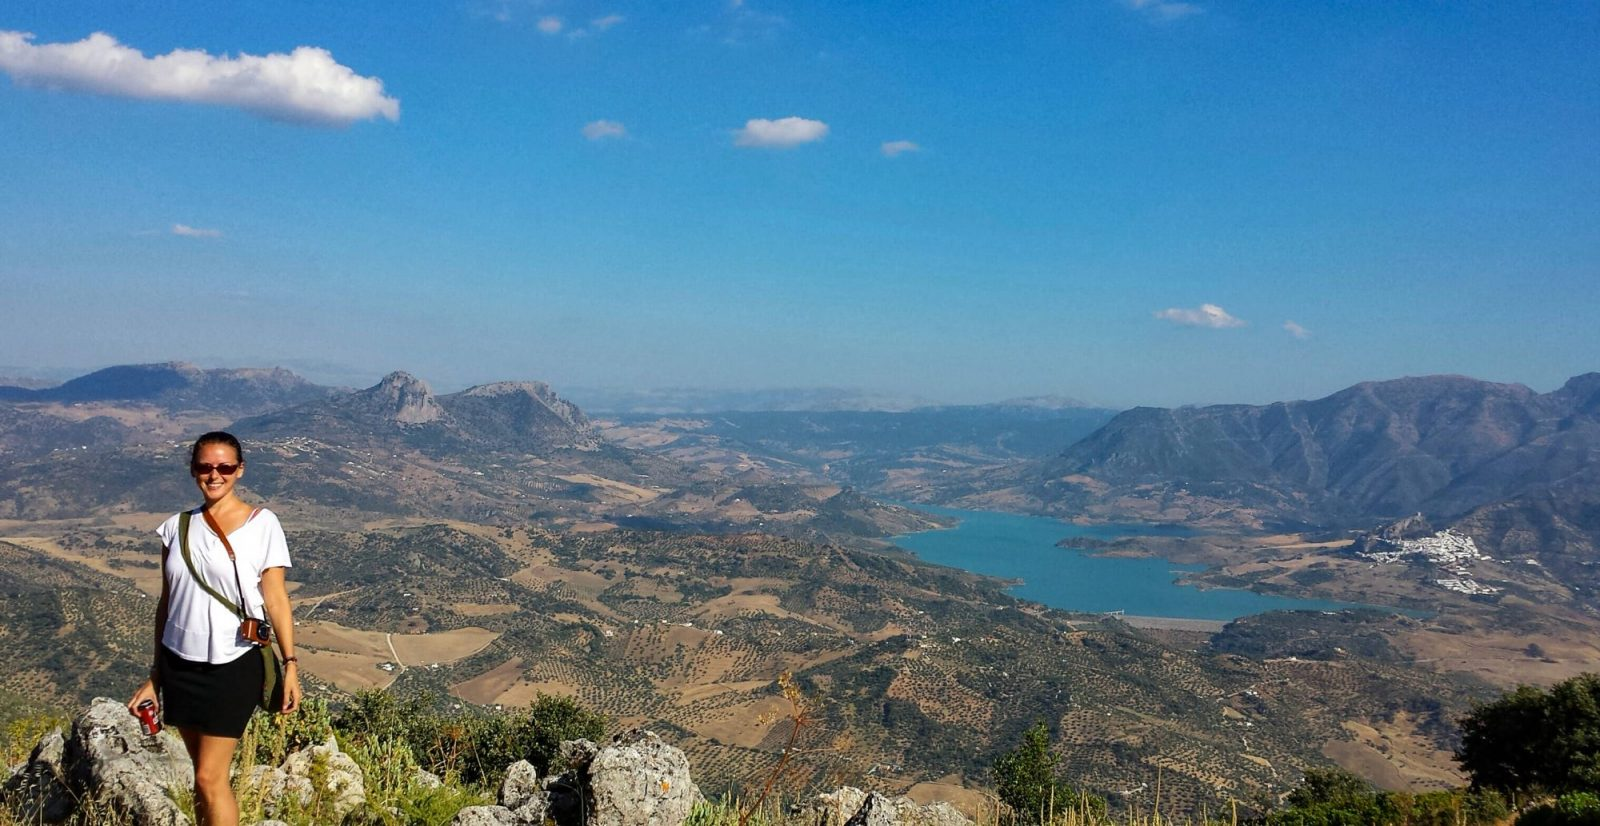 Traveling Spain - Exploring Andalucia on a Budget